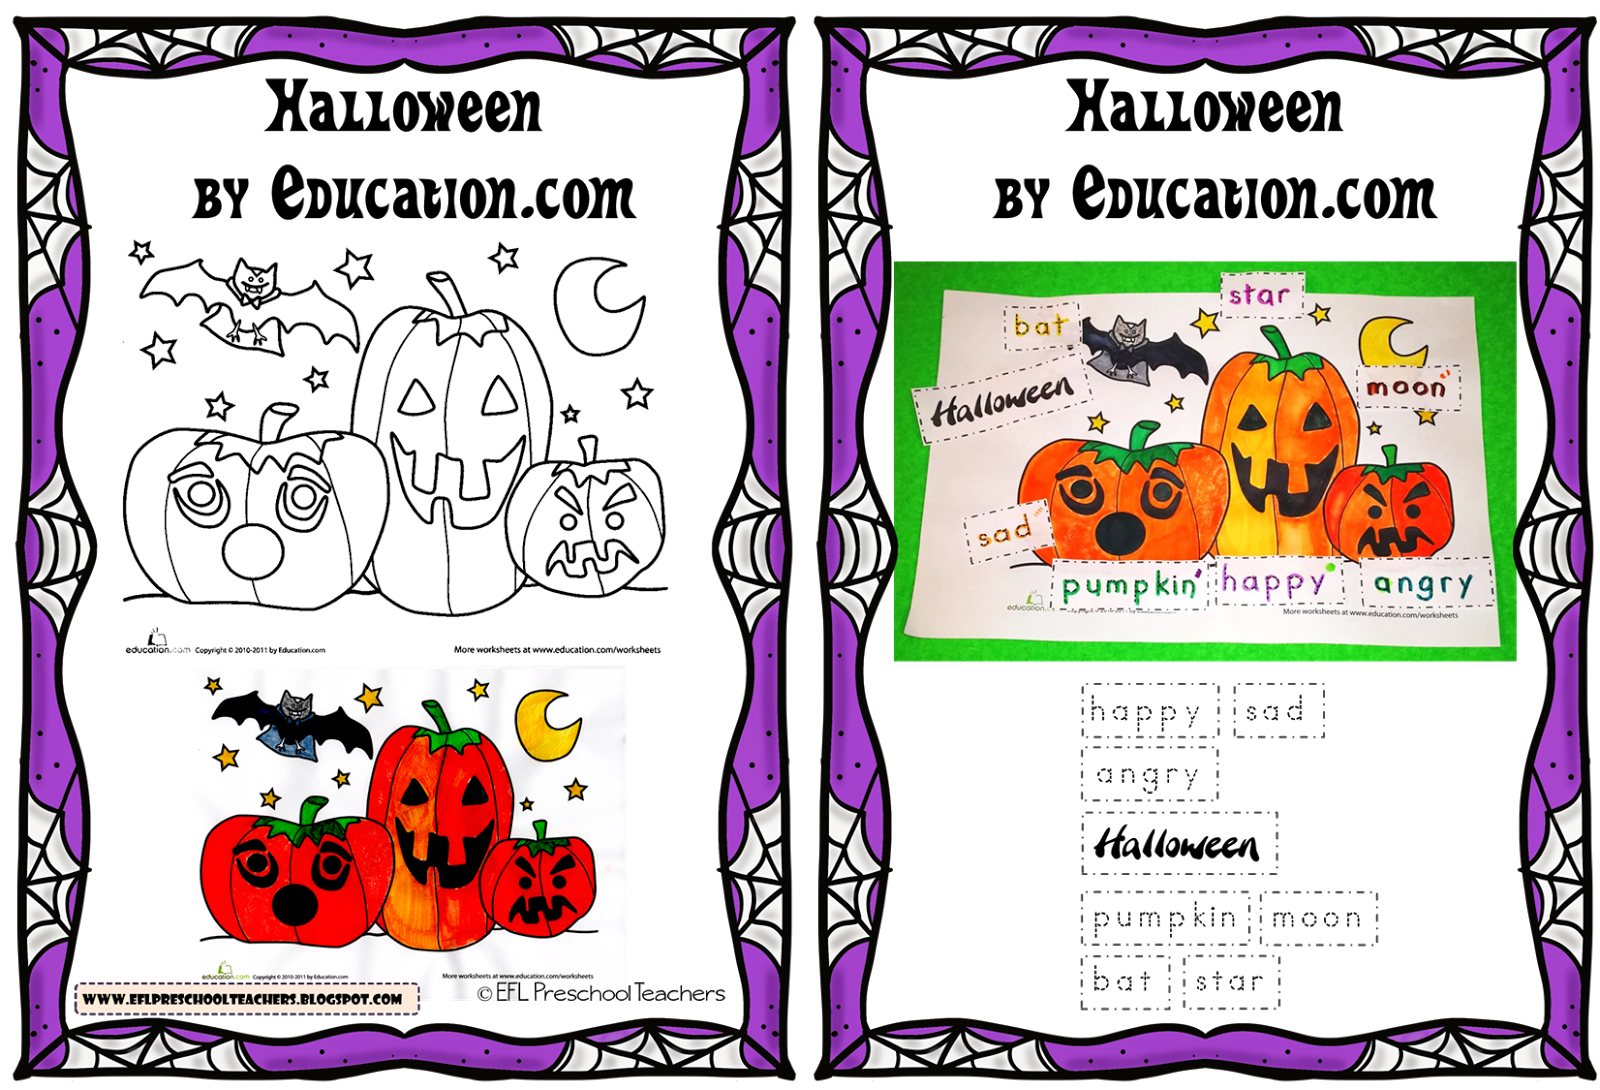 Esl Efl Preschool Teachers Halloween By Education